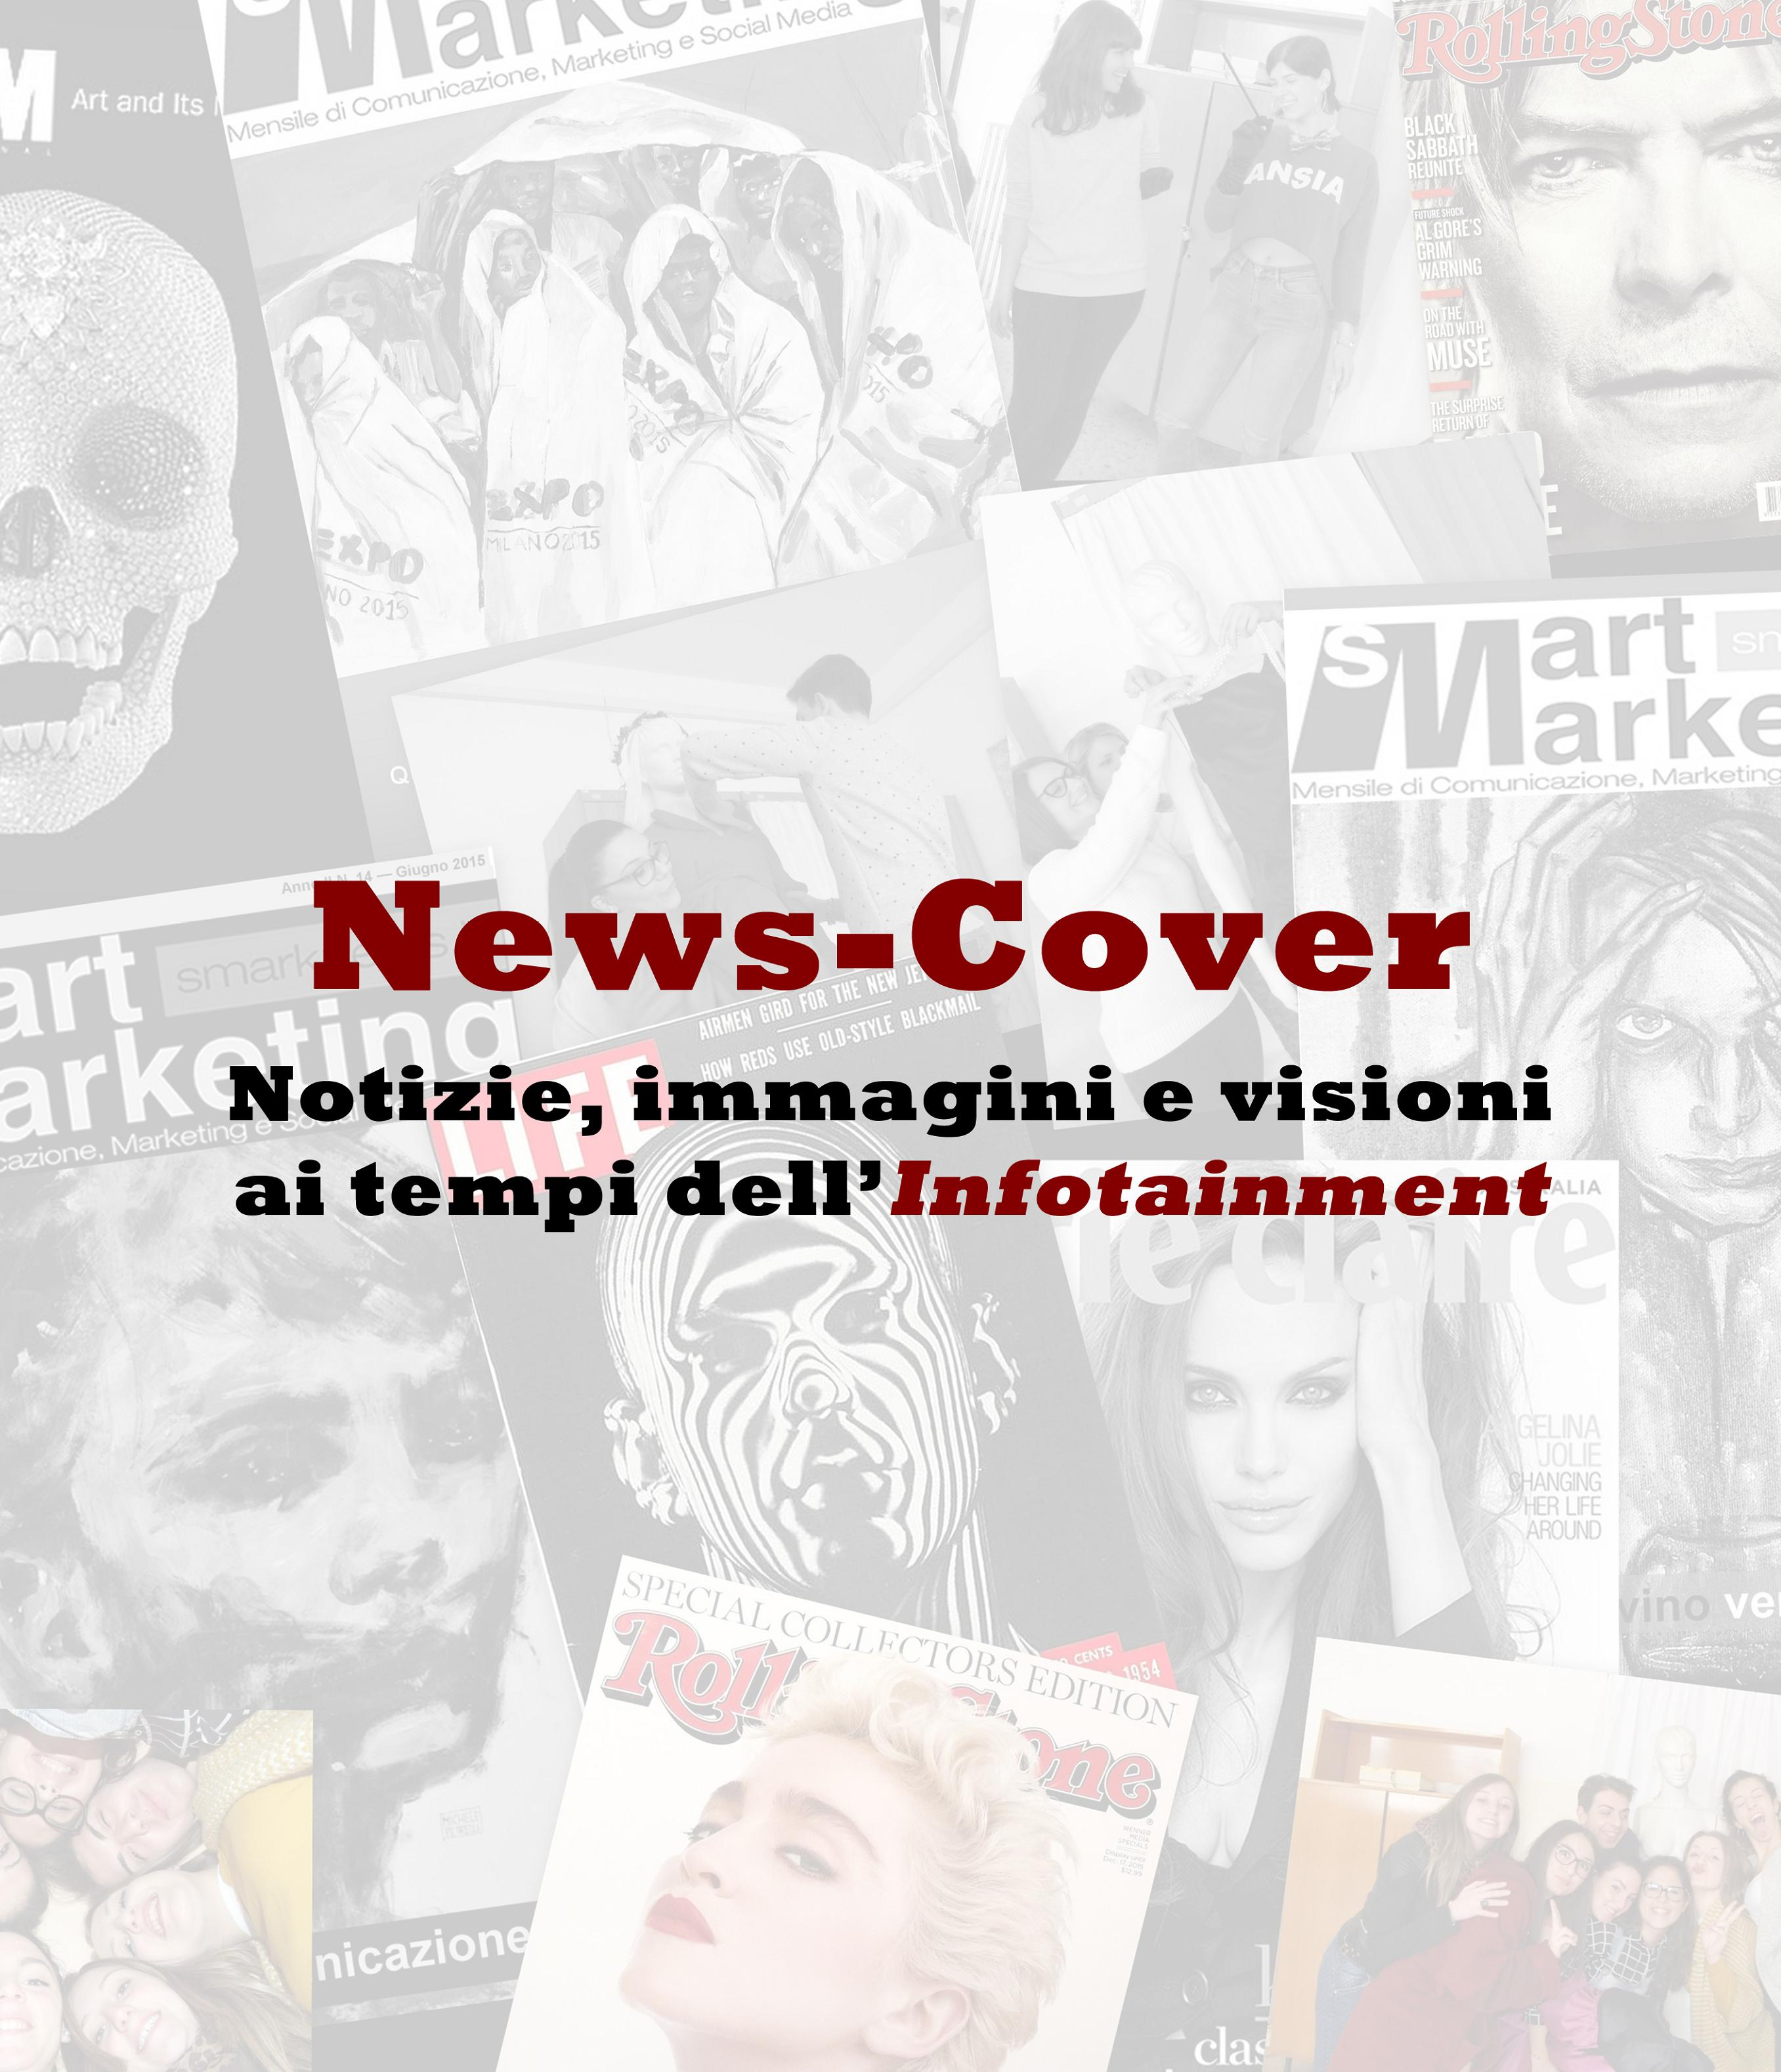 News-Cover